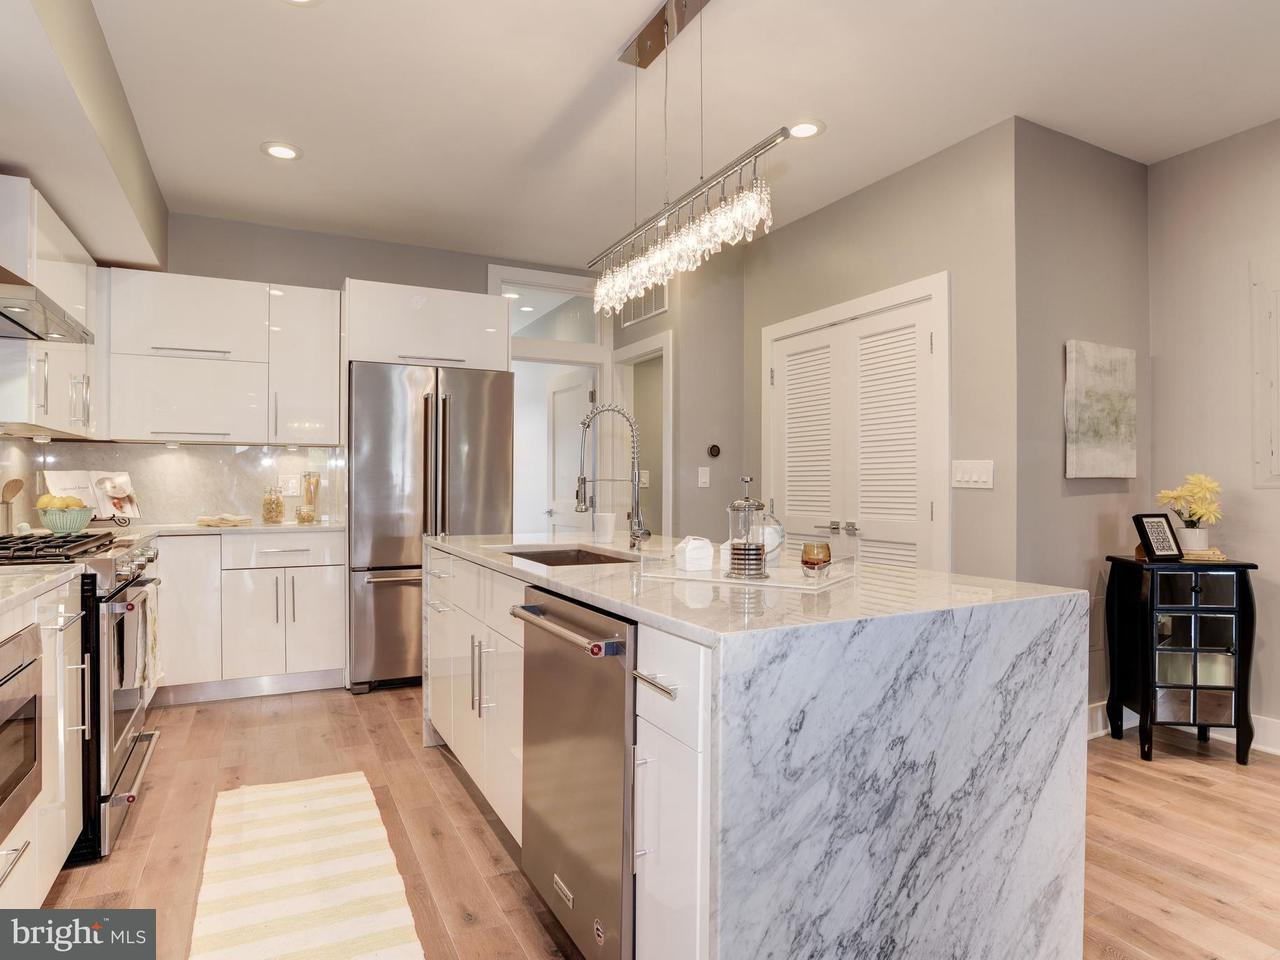 Duplex for Sale at 758 FAIRMONT ST NW #2 758 FAIRMONT ST NW #2 Washington, District Of Columbia 20001 United States